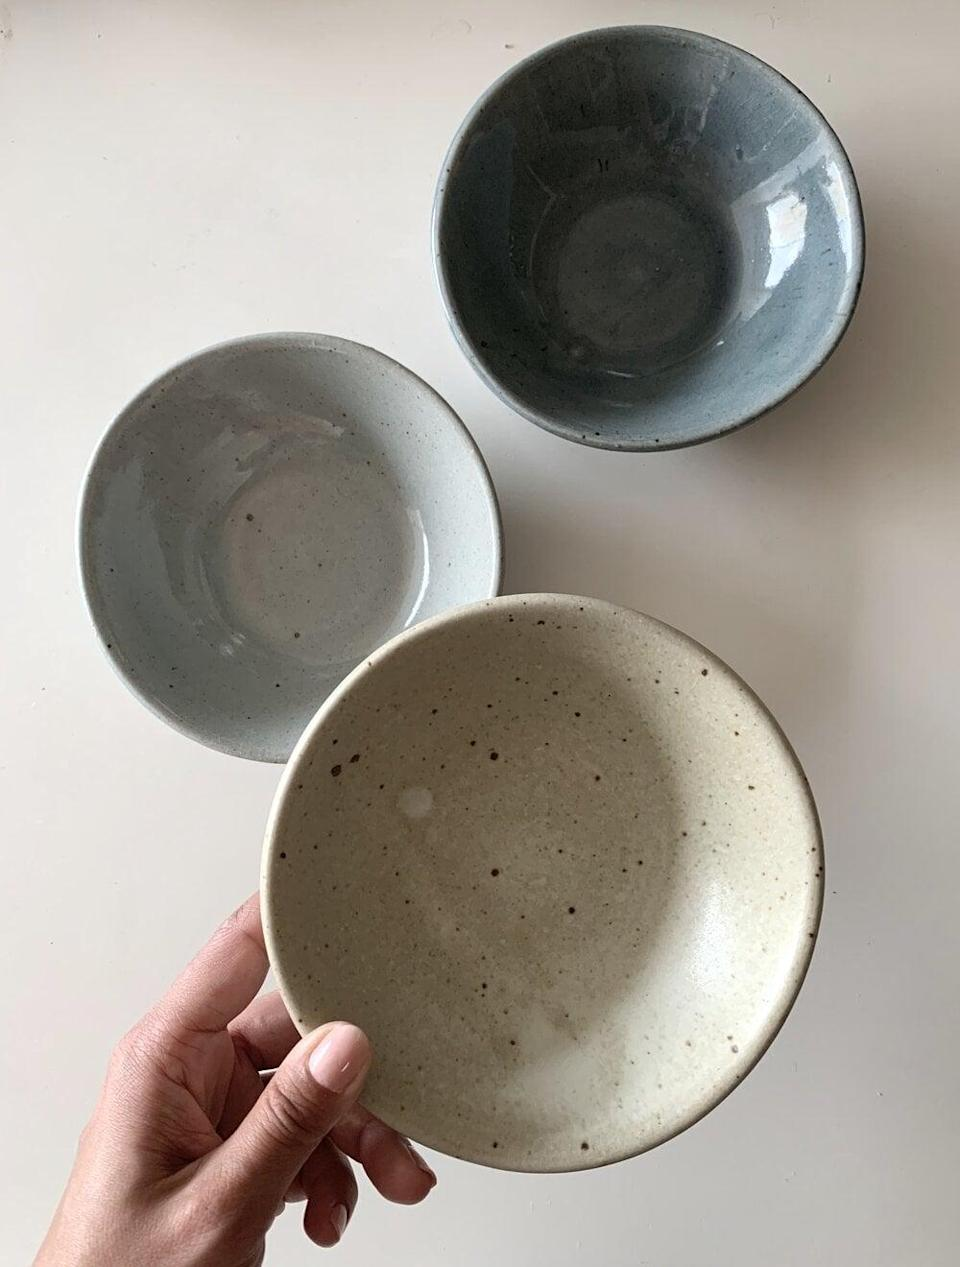 "<p>Upgrade your kitchen with a few of these <a href=""https://www.popsugar.com/buy/Home-Obidos-Mini-Bowls-584965?p_name=Home%20by%20BE.%20Obidos%20Mini%20Bowls&retailer=homebybe.com&pid=584965&price=40&evar1=casa%3Aus&evar9=45784601&evar98=https%3A%2F%2Fwww.popsugar.com%2Fhome%2Fphoto-gallery%2F45784601%2Fimage%2F47575729%2FHome-by-BE-Obidos-Mini-Bowl&list1=shopping%2Cproducts%20under%20%2450%2Cdecor%20inspiration%2Caffordable%20shopping%2Chome%20shopping&prop13=api&pdata=1"" class=""link rapid-noclick-resp"" rel=""nofollow noopener"" target=""_blank"" data-ylk=""slk:Home by BE. Obidos Mini Bowls"">Home by BE. Obidos Mini Bowls</a> ($40).</p>"